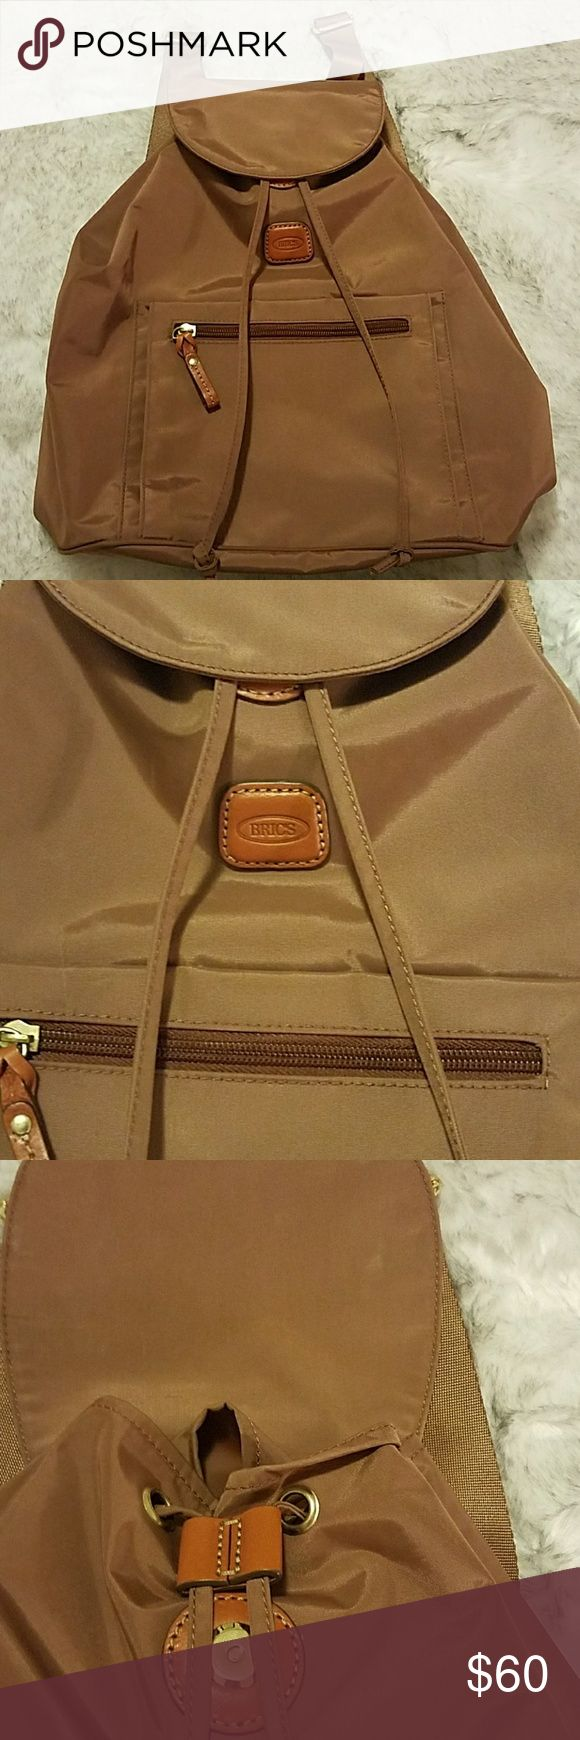 BRICS BAG X-BAG Excellent conditions like new.. previously loved. It has a color between tan/ brown BRICS Bags